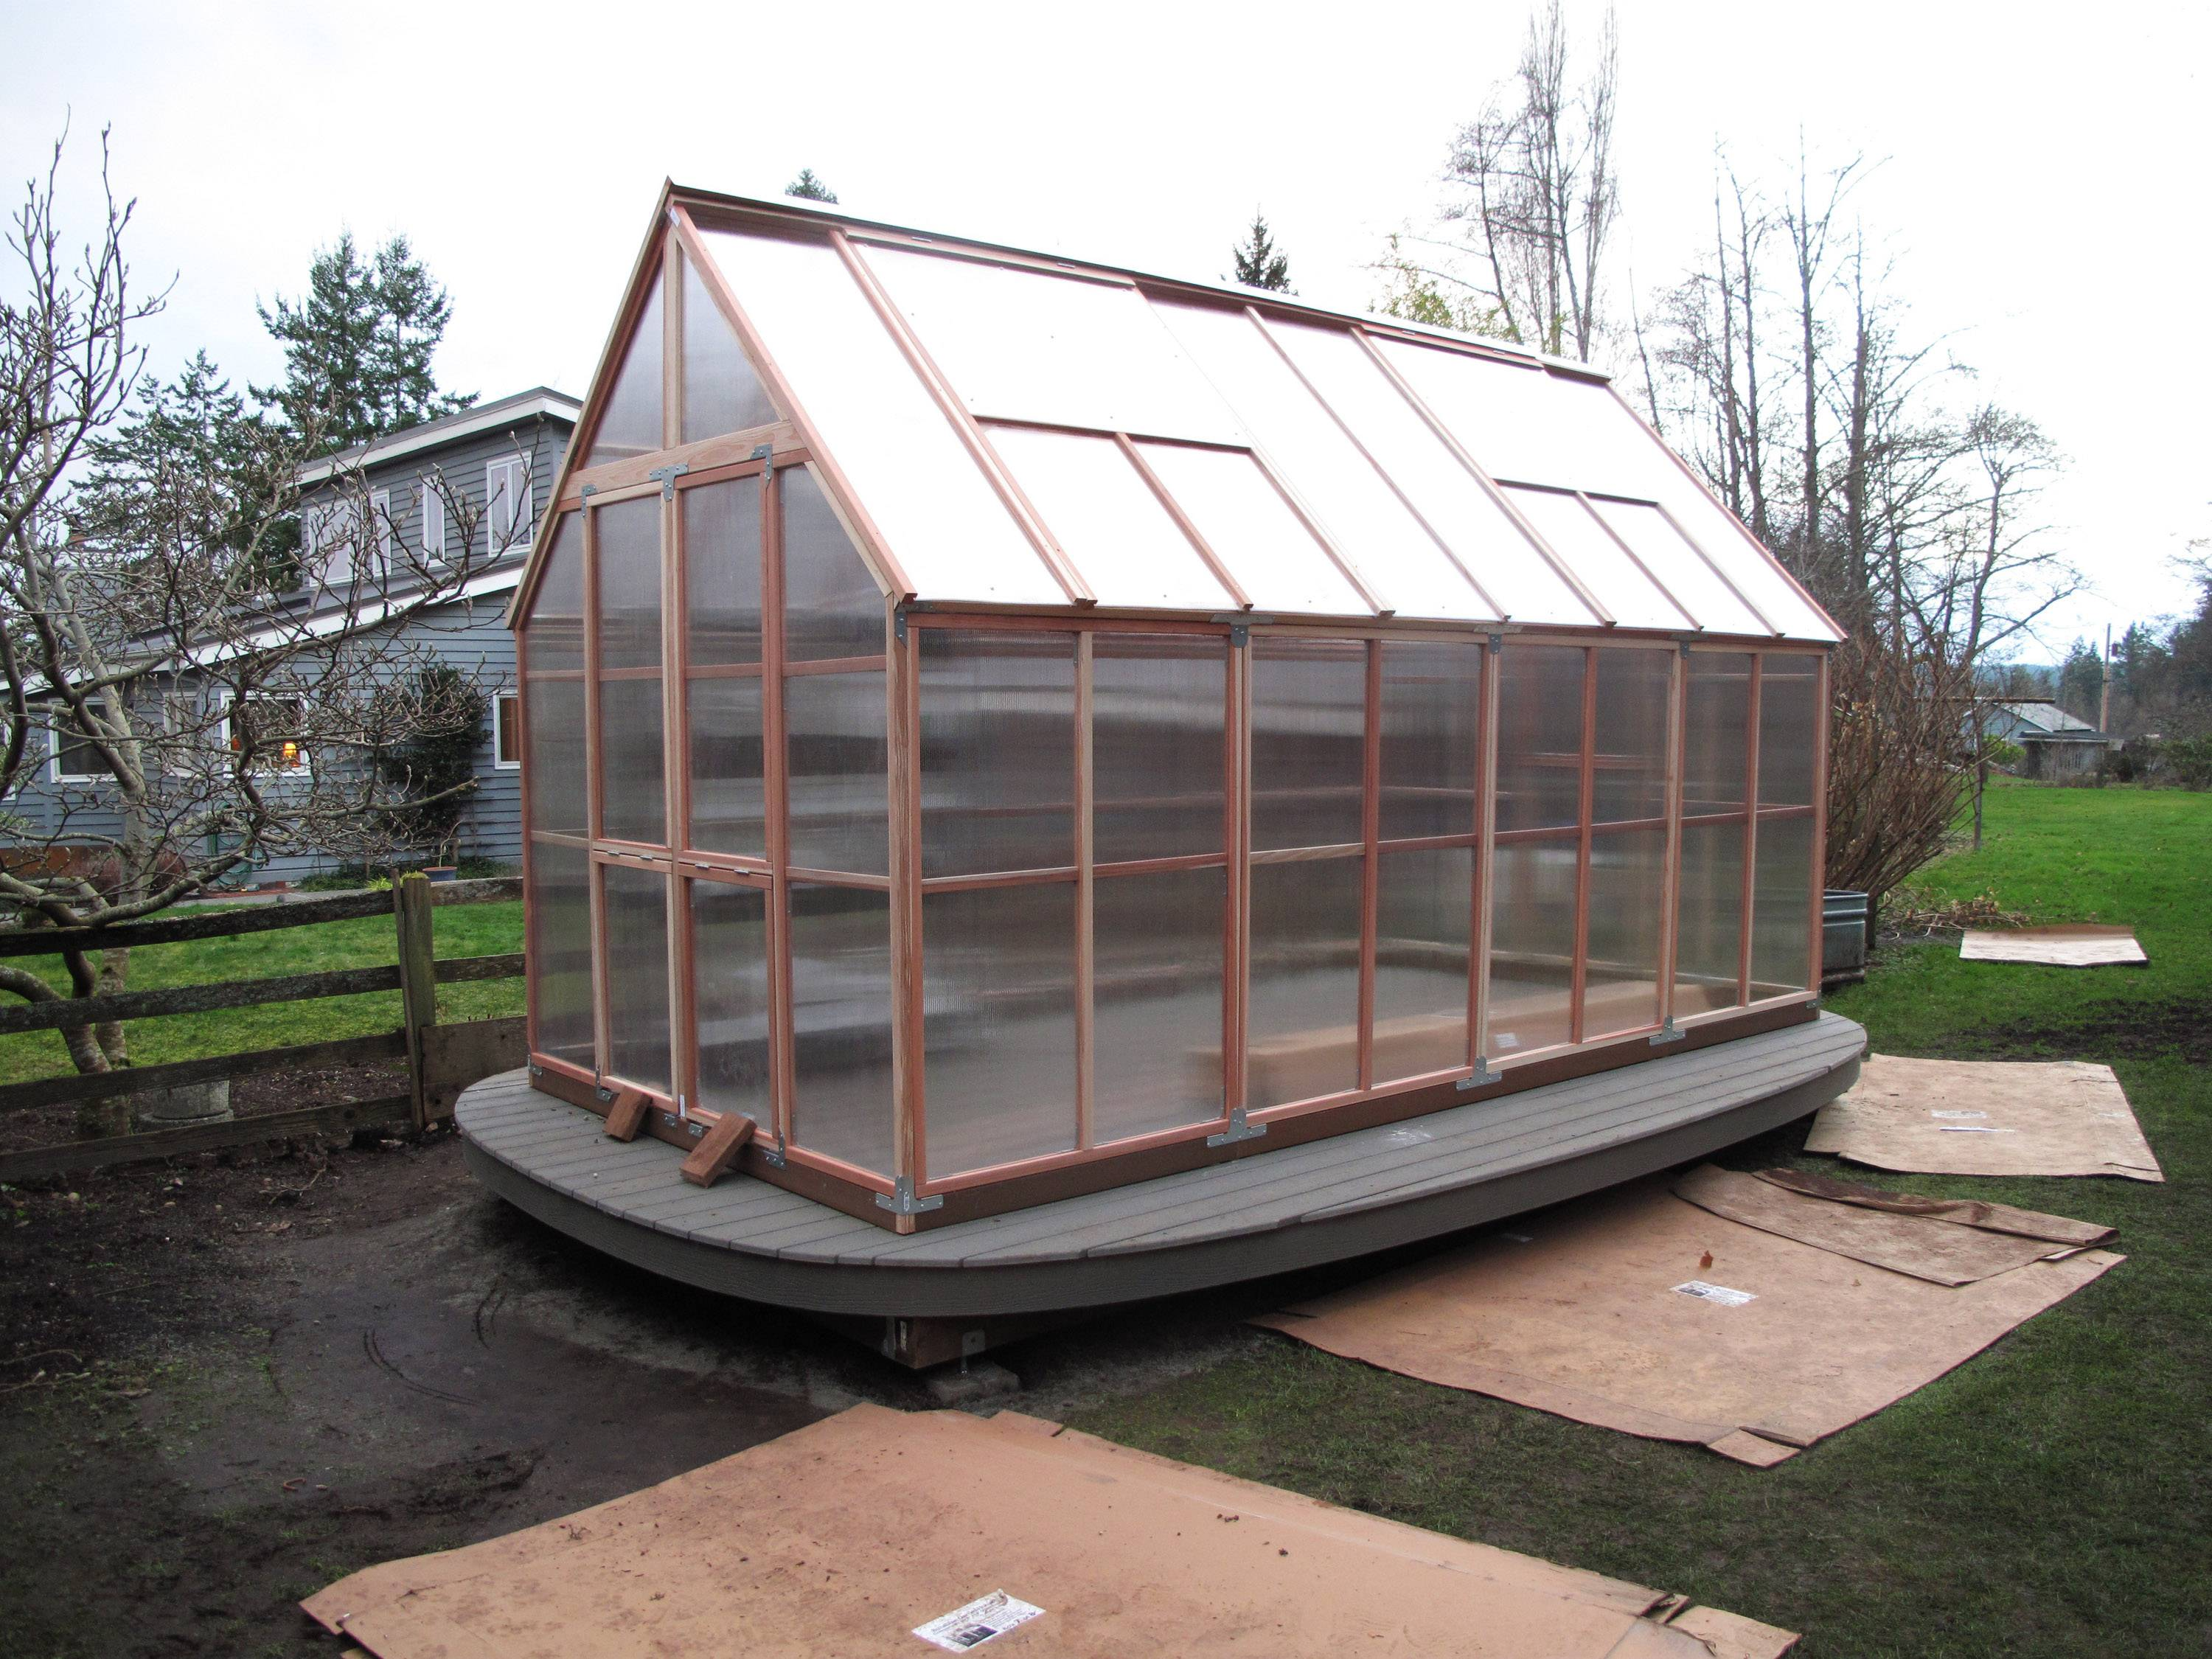 A new homeowner added a prebuilt Sunshine GardenHouse made from a kit to greatly extend the growing season in the cool coastal climate of Whidbey Island in Langley, Wash. It's being used for everything from seed starting and growing tomatoes and sweet corn to relaxing with a good book on days when it's too wet to garden.